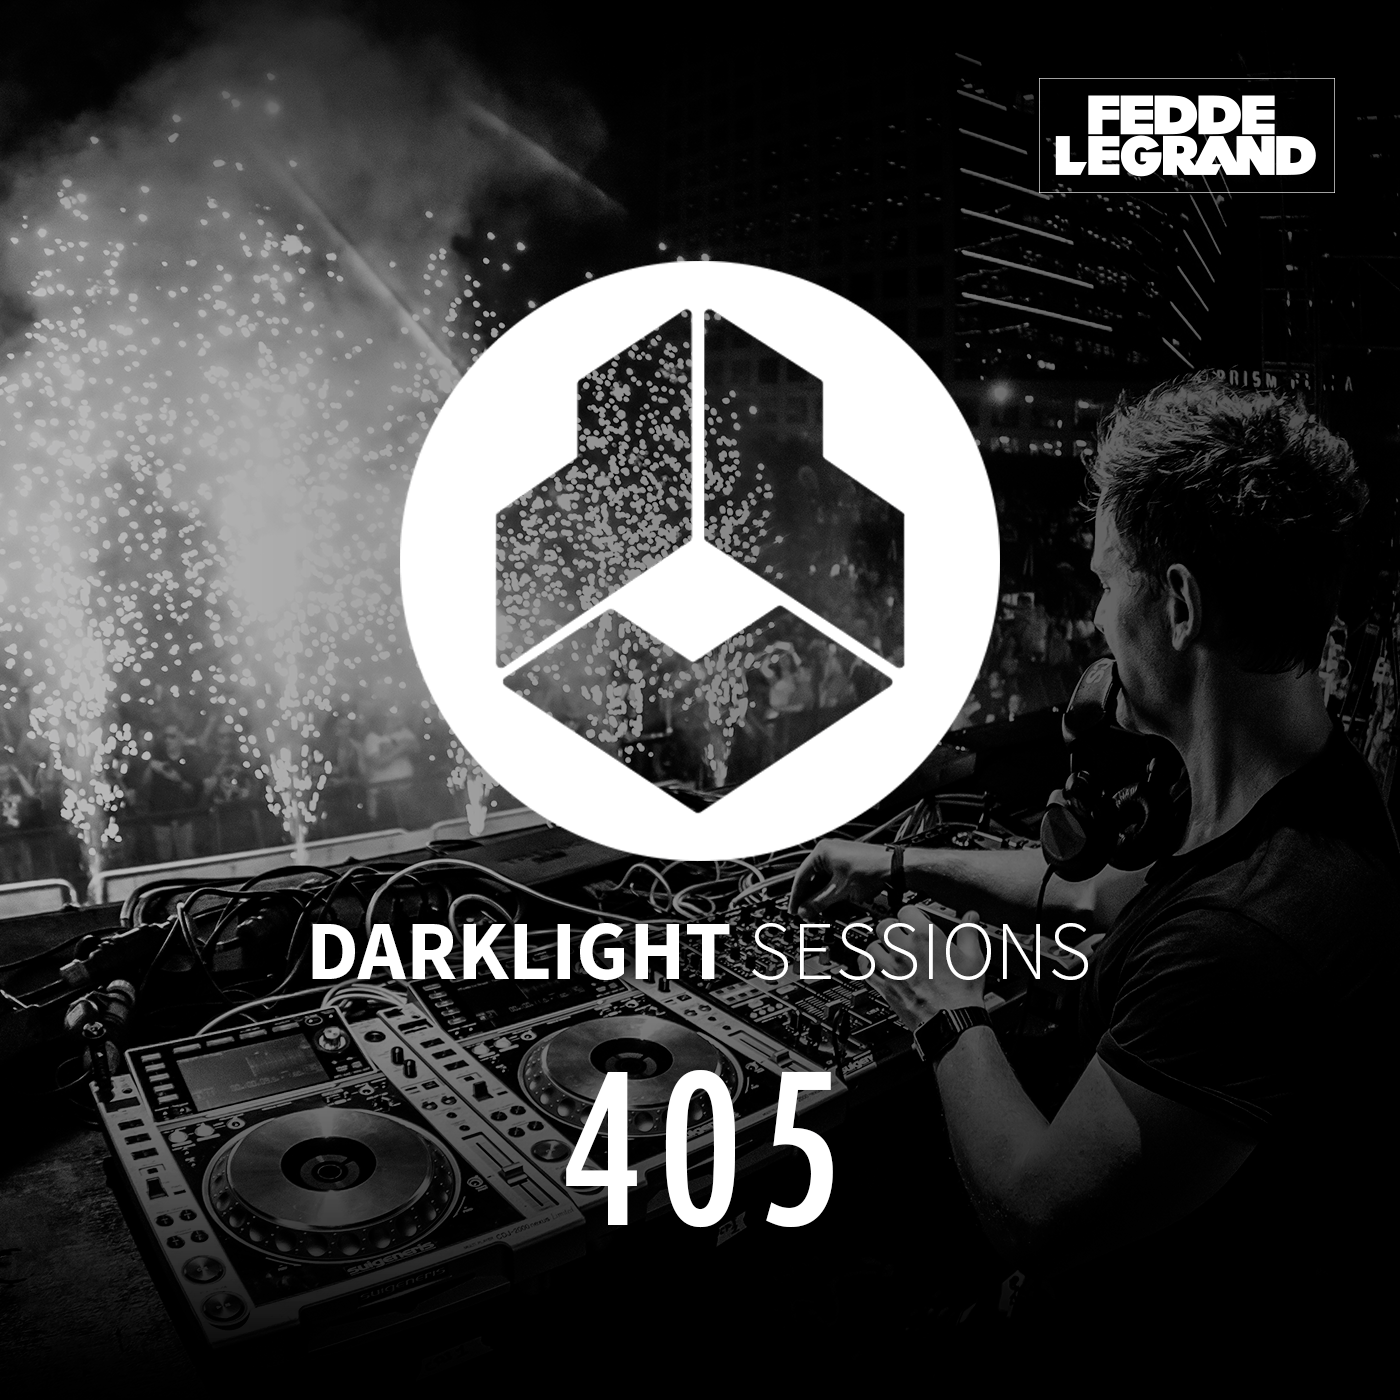 Darklight Sessions 405